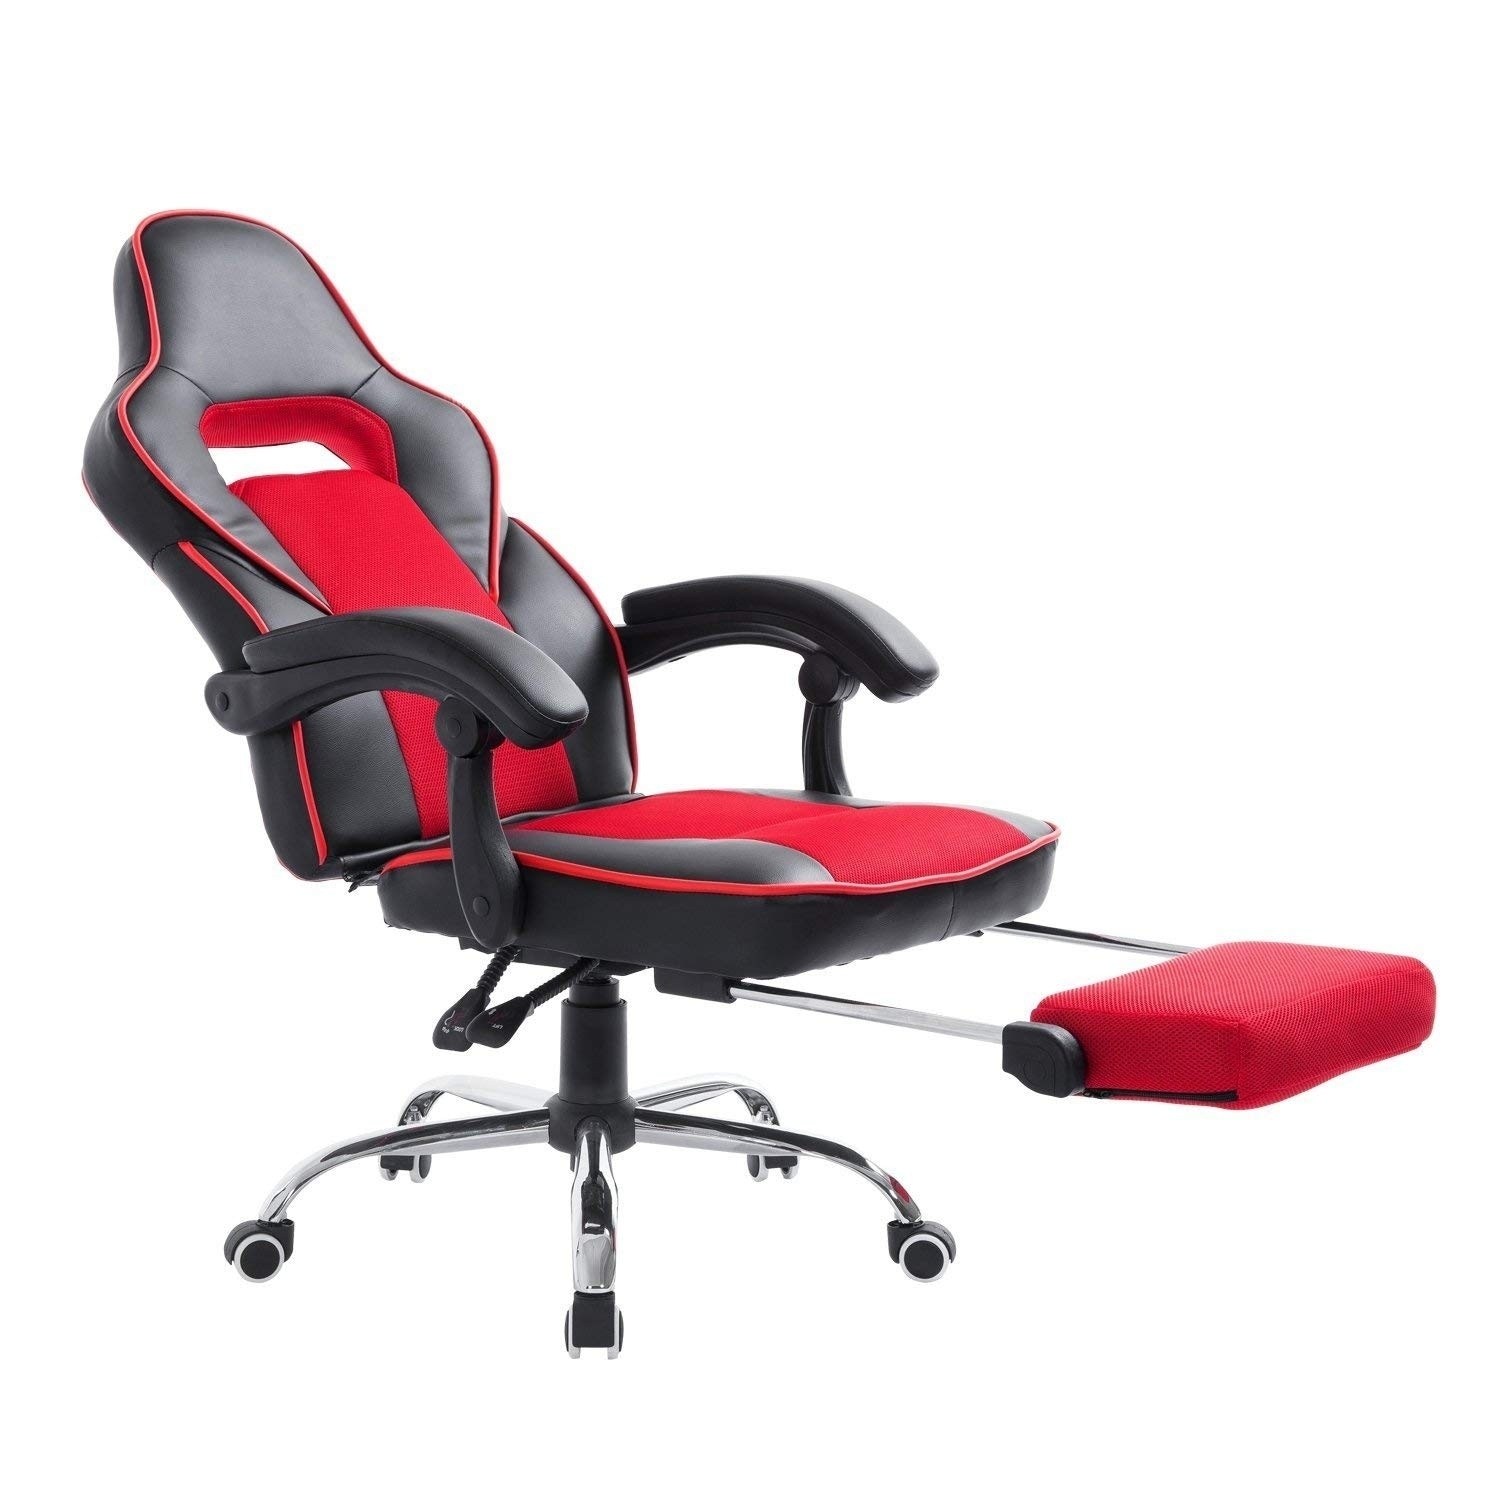 HomCom High Back Racing Style Ergonomic Gaming Chair With Retractable Footrest - Red / Black (High Back)